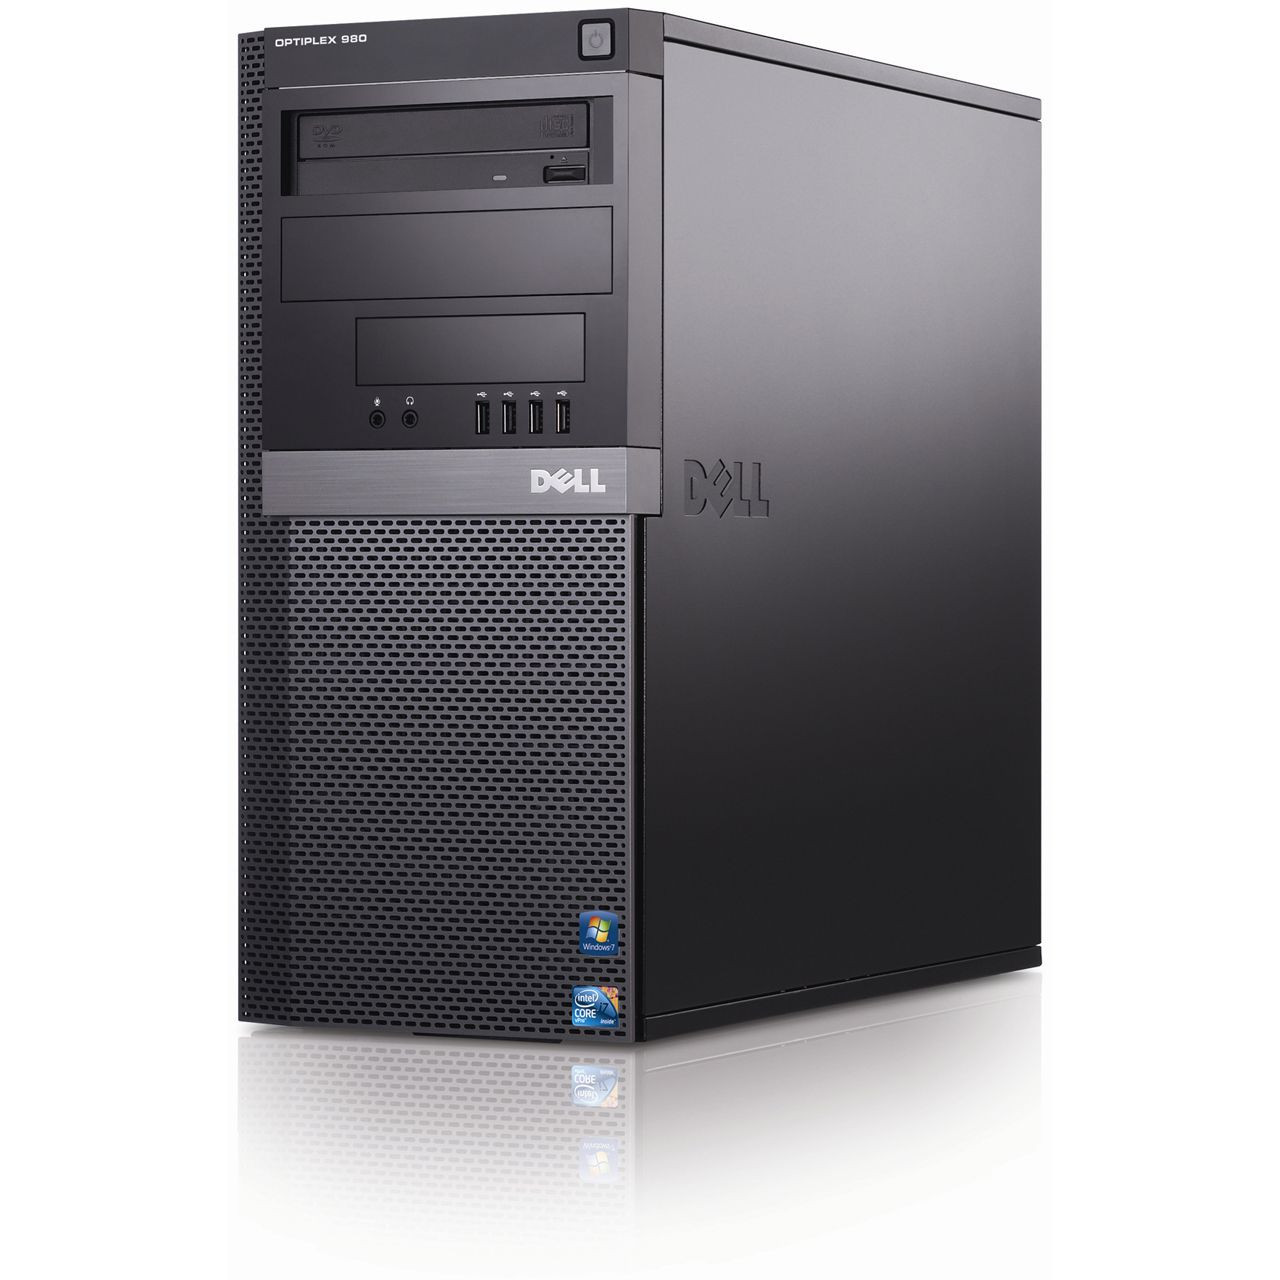 Refurbished Dell optiplex 980 Mini Tower - Front view